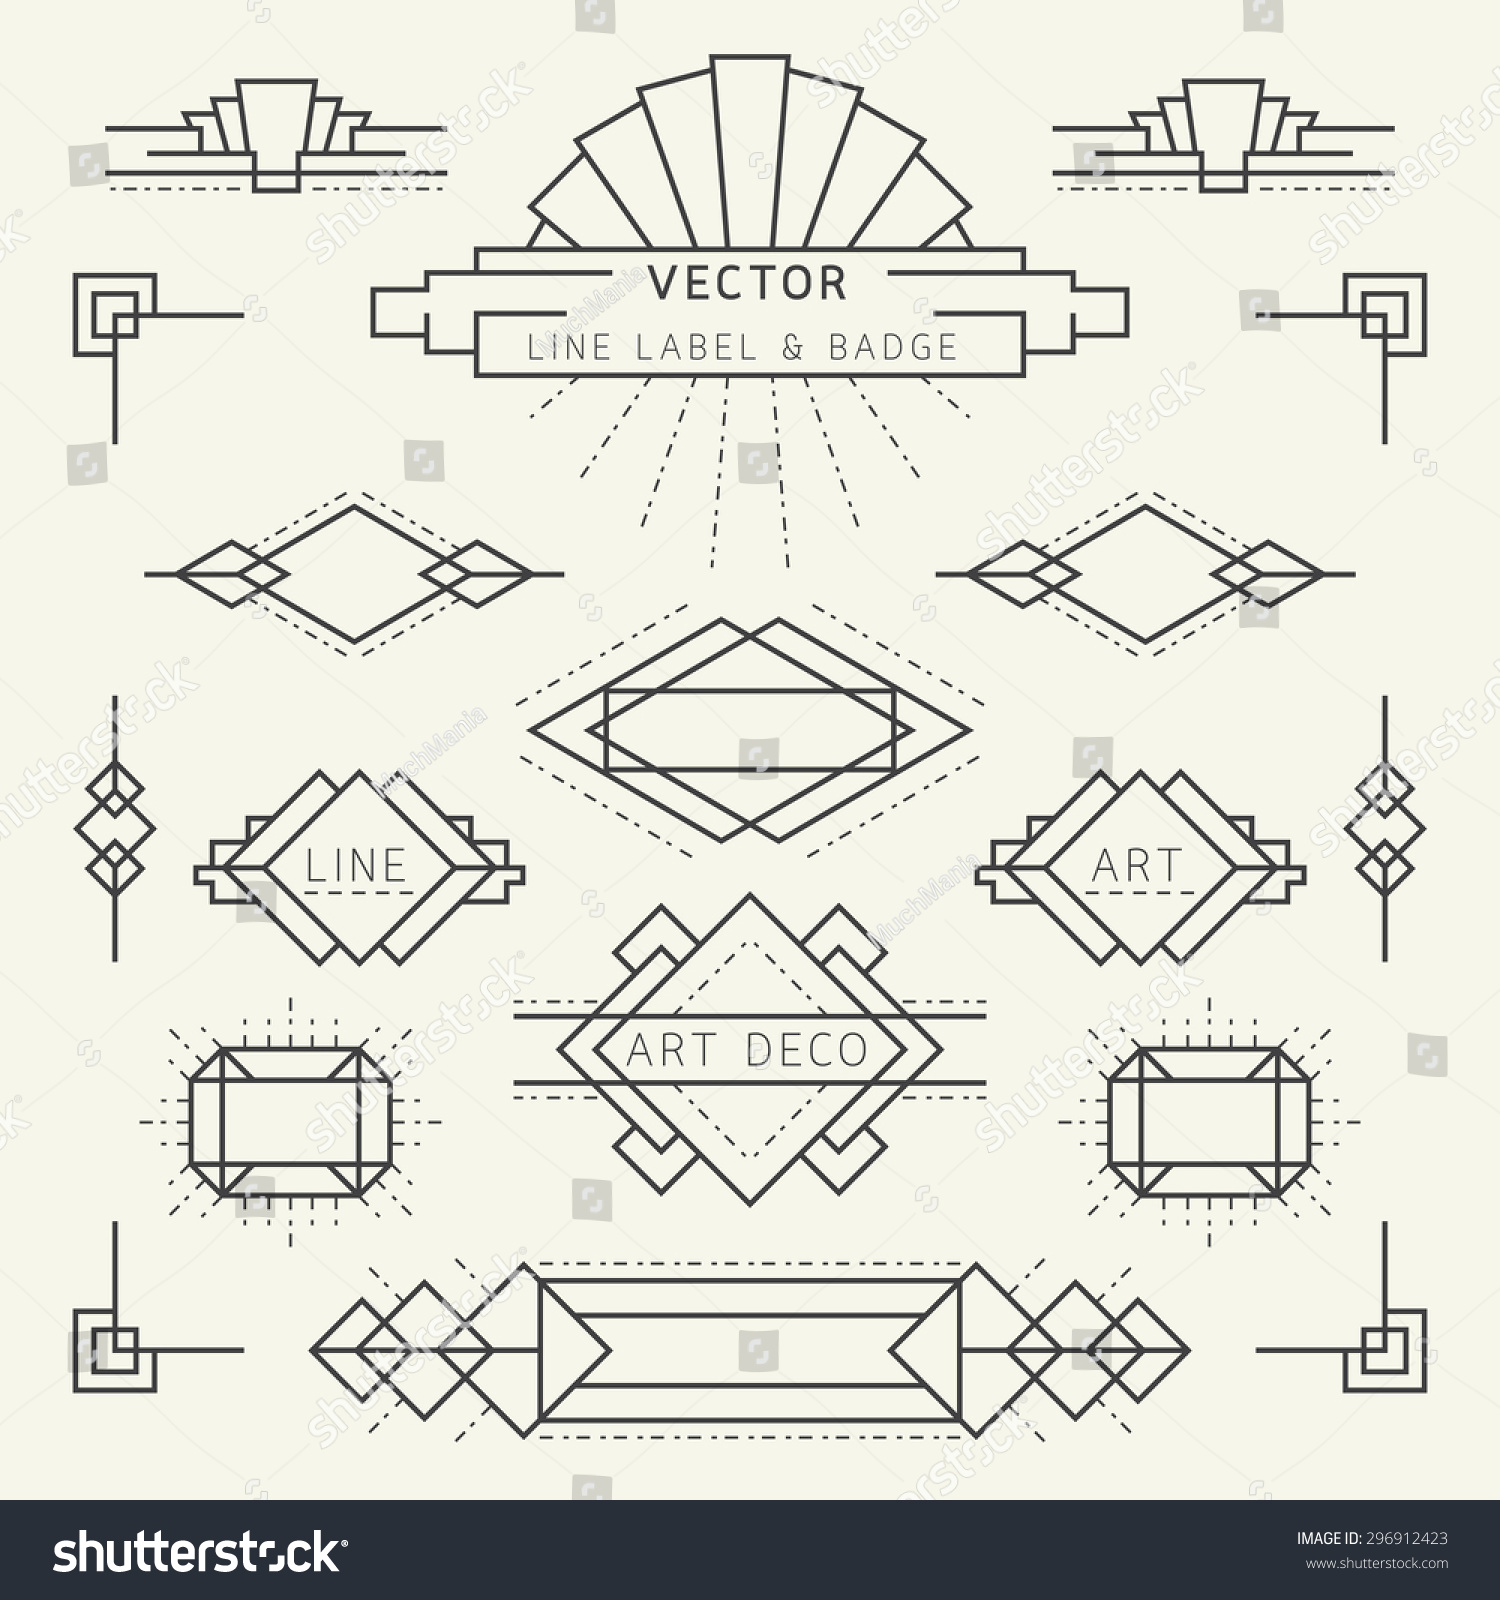 Art Deco Graphic Design Elements Art Deco Style Linear Geometric